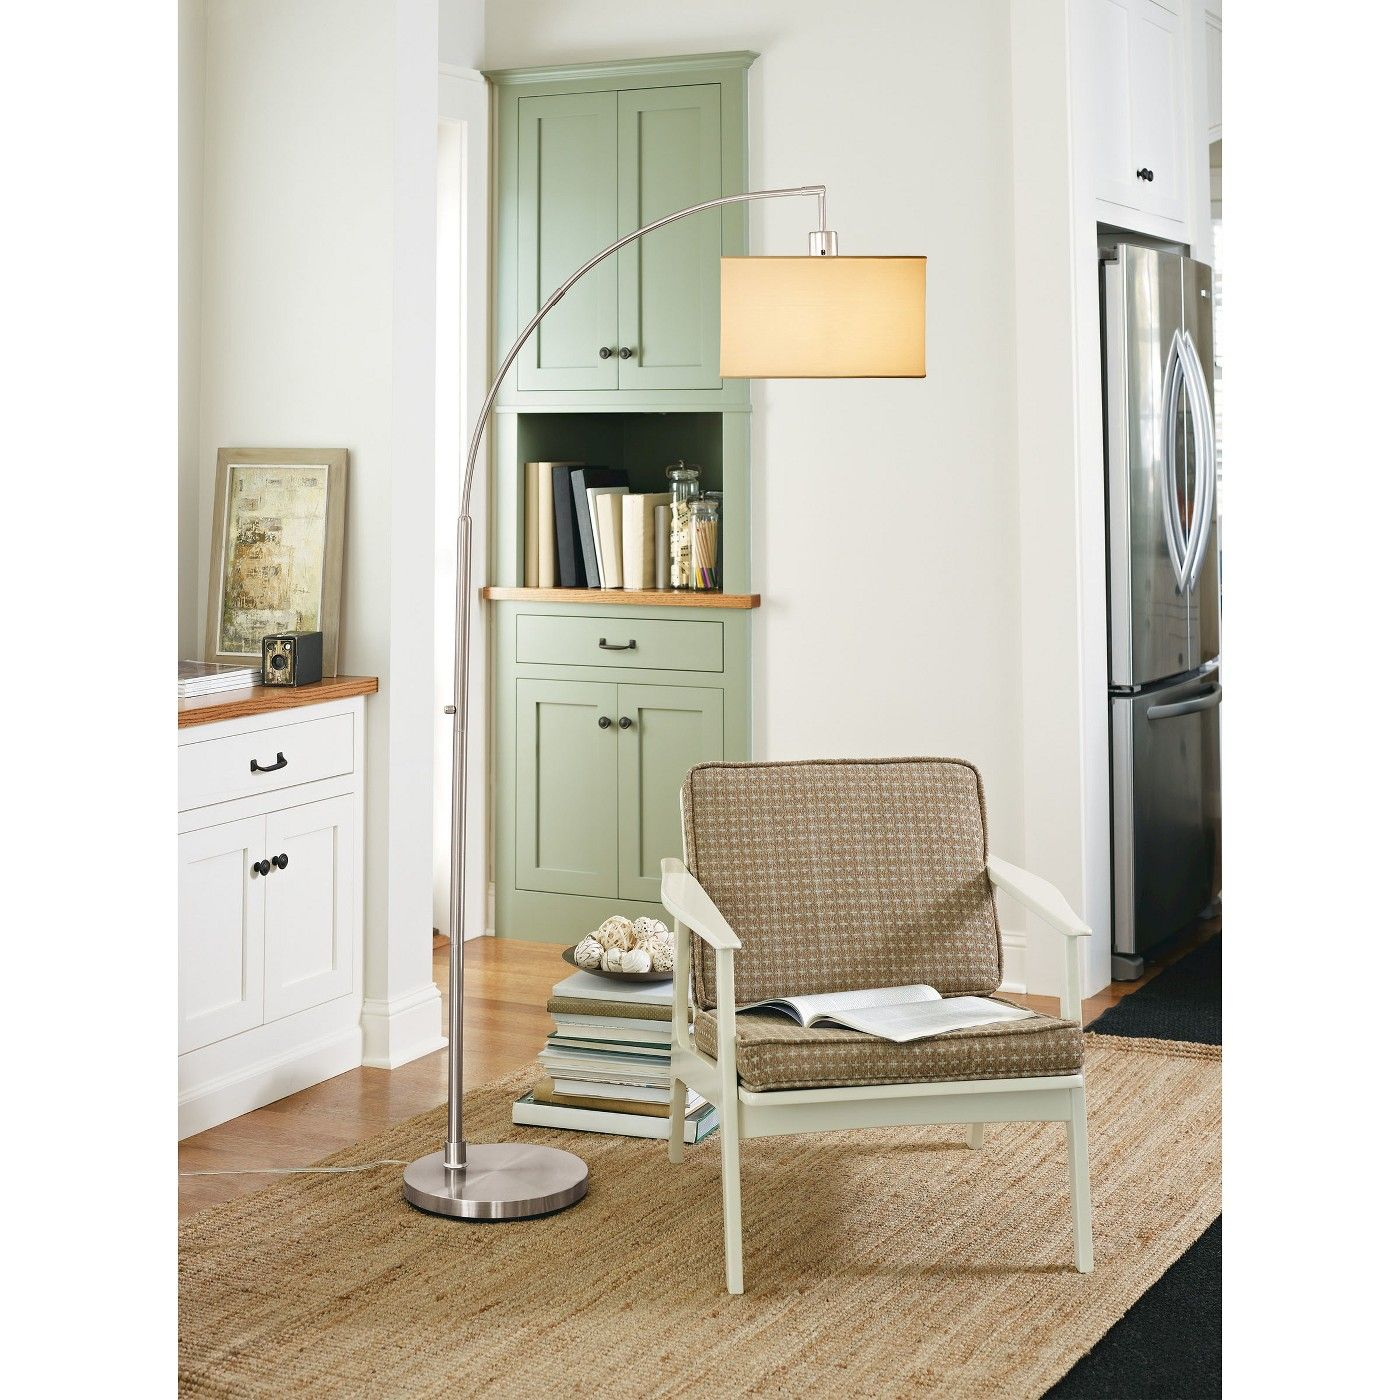 Avenal Shaded Arc with Marble Base Floor Lamp Nickel - Project 17